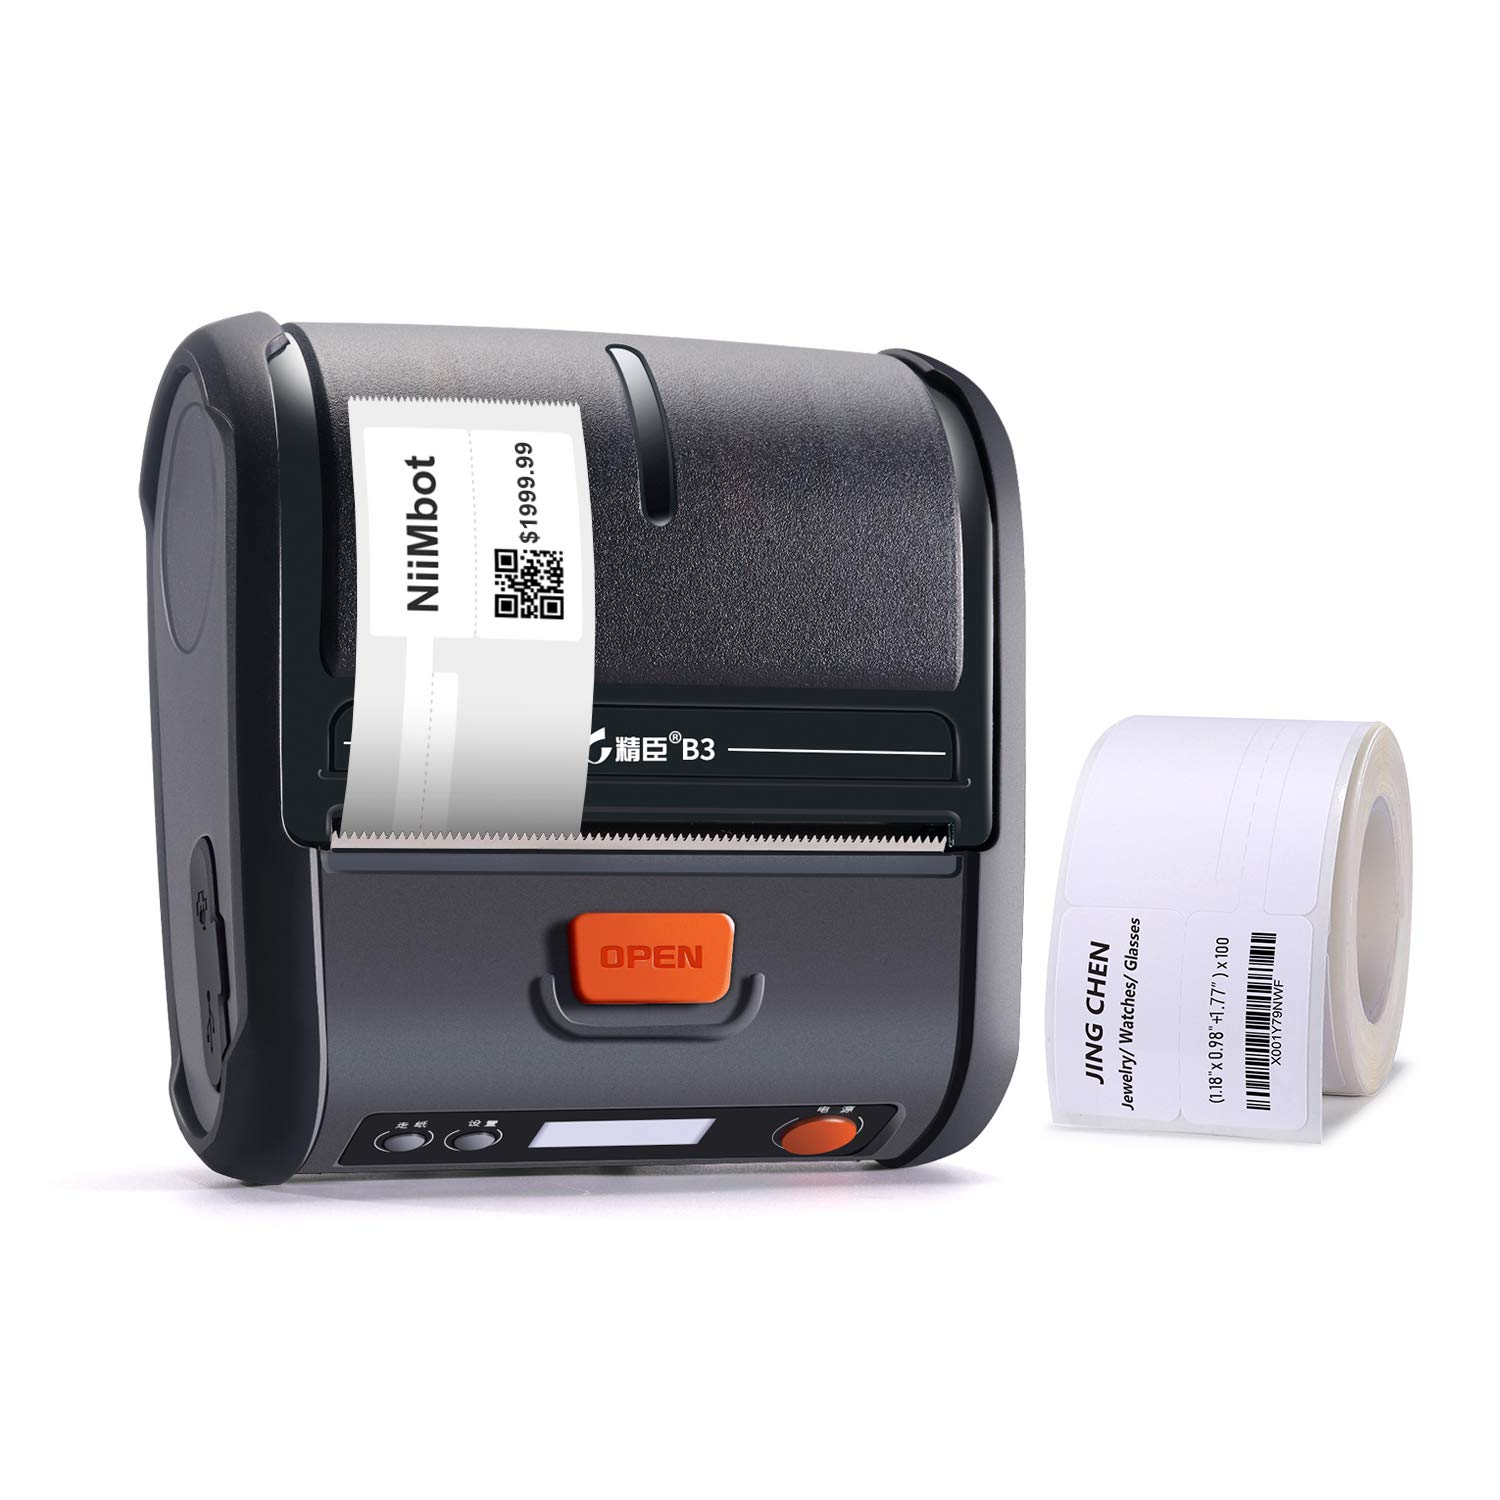 JINGCHEN Portable B3 Thermal Label Printer, Android & iOS, Glasses, Jewelry, Bracelets, Antiques, Barcode.(0.98x1.18+1.77in) 100 Labels/roll, 1 roll for Free